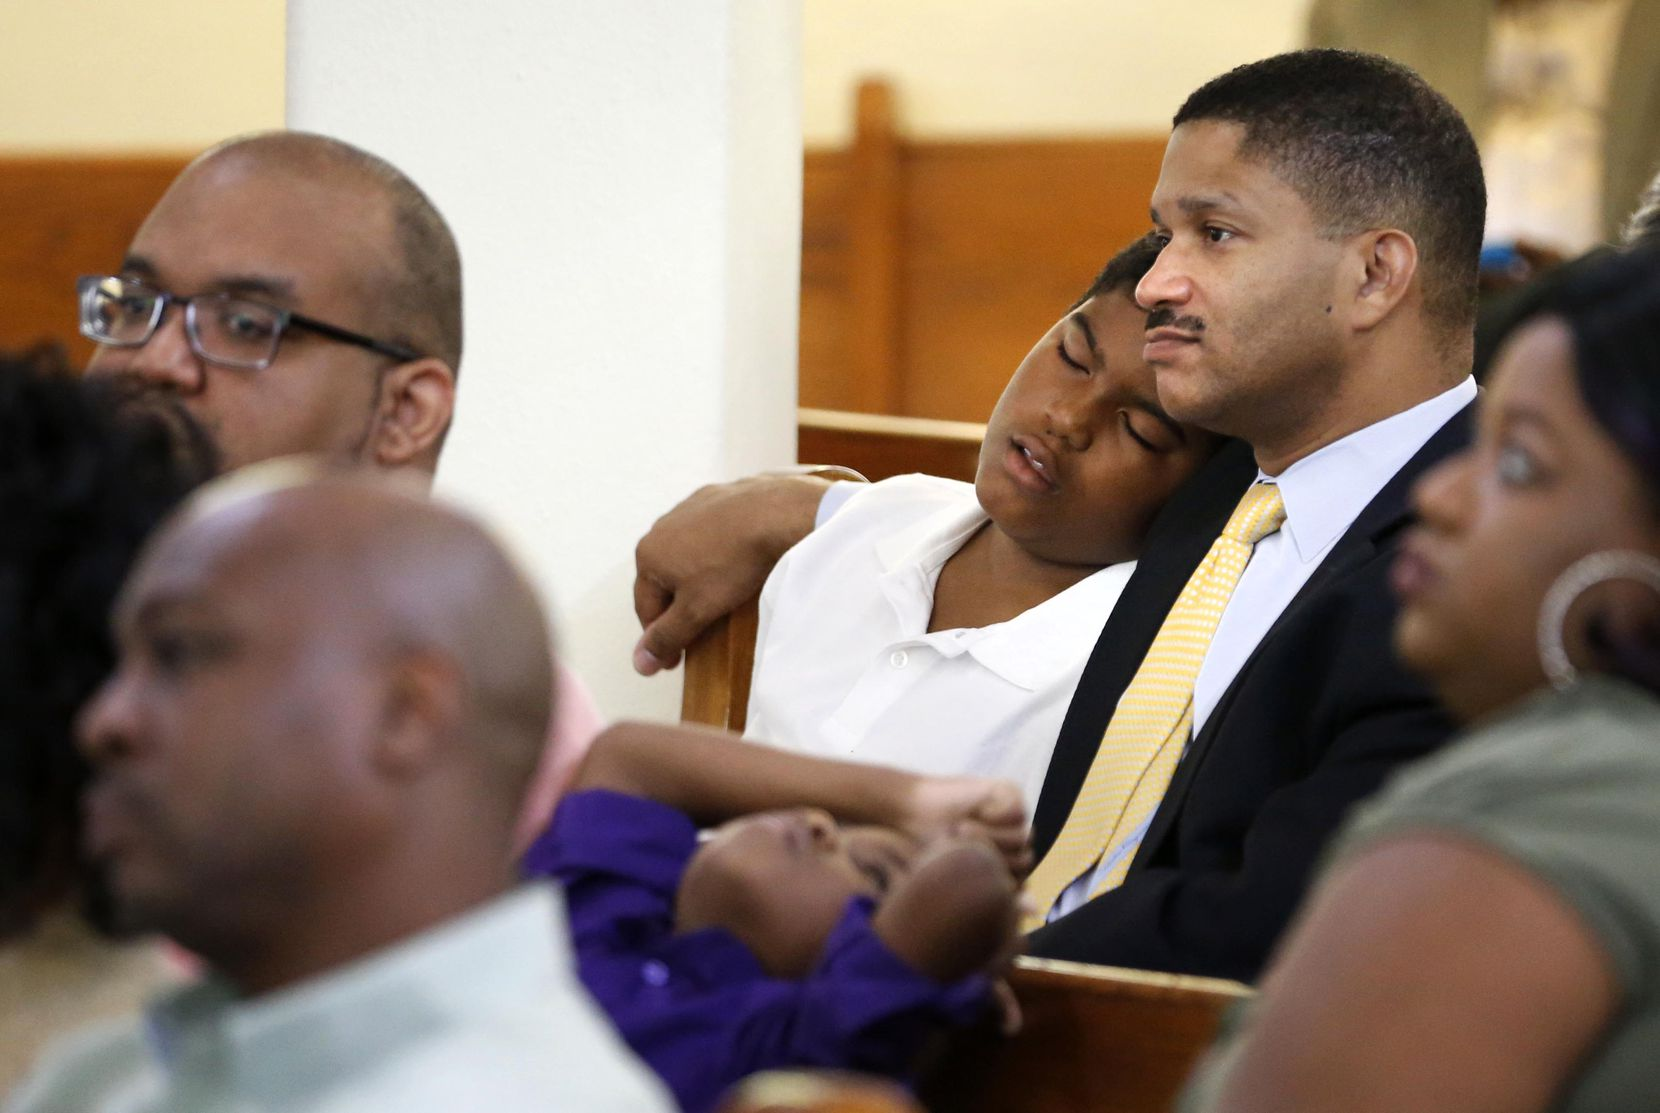 Christopher Waters falls asleep on his father James' shoulder at St. Paul United Methodist Church in Dallas. (Vernon Bryant/Staff Photographer)